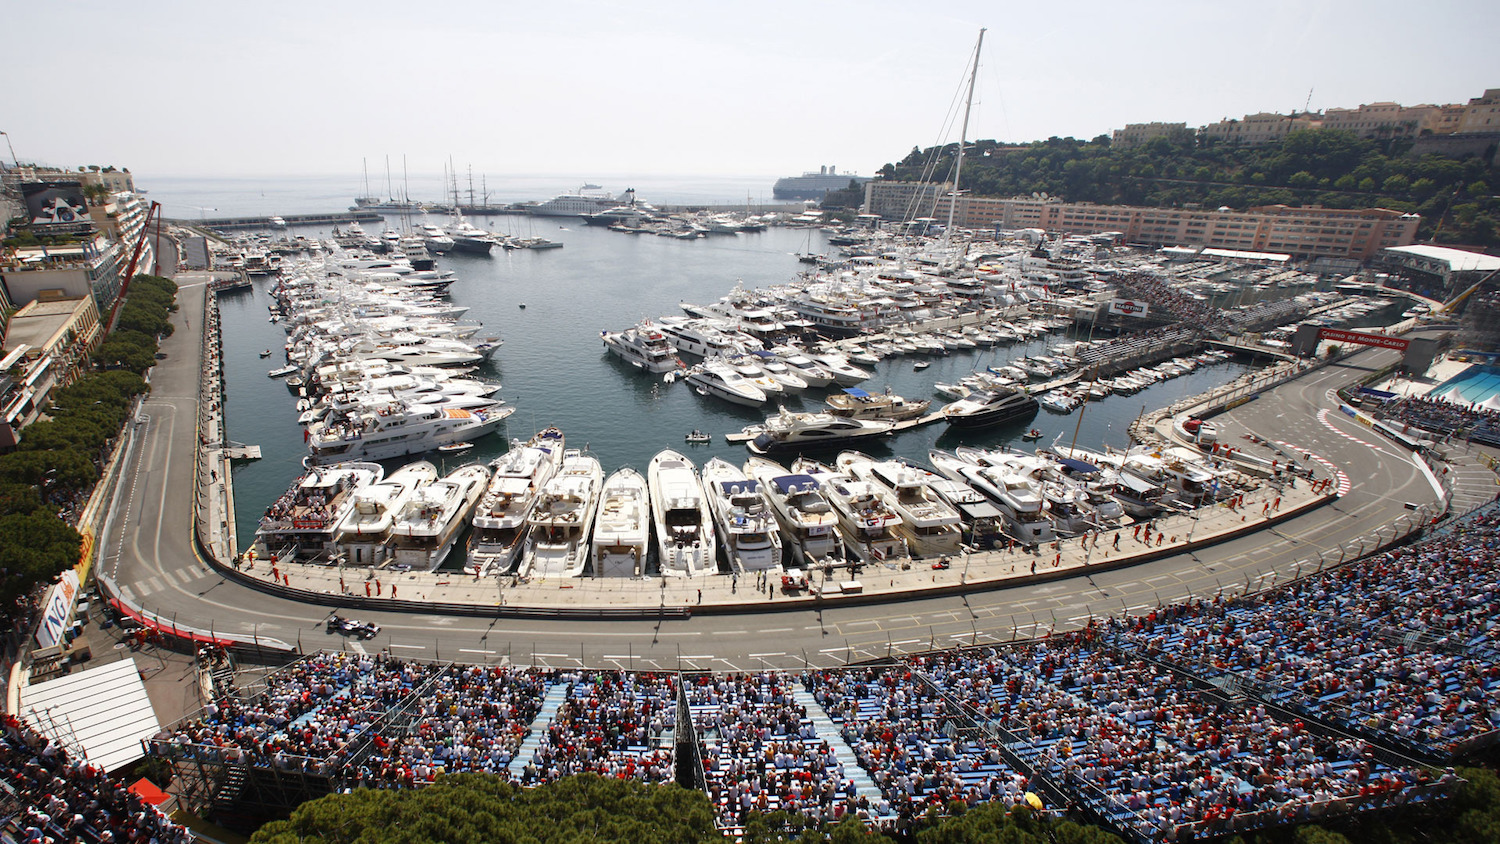 monaco grand prix yacht charter yacht hospitality french riviera luxury. Black Bedroom Furniture Sets. Home Design Ideas